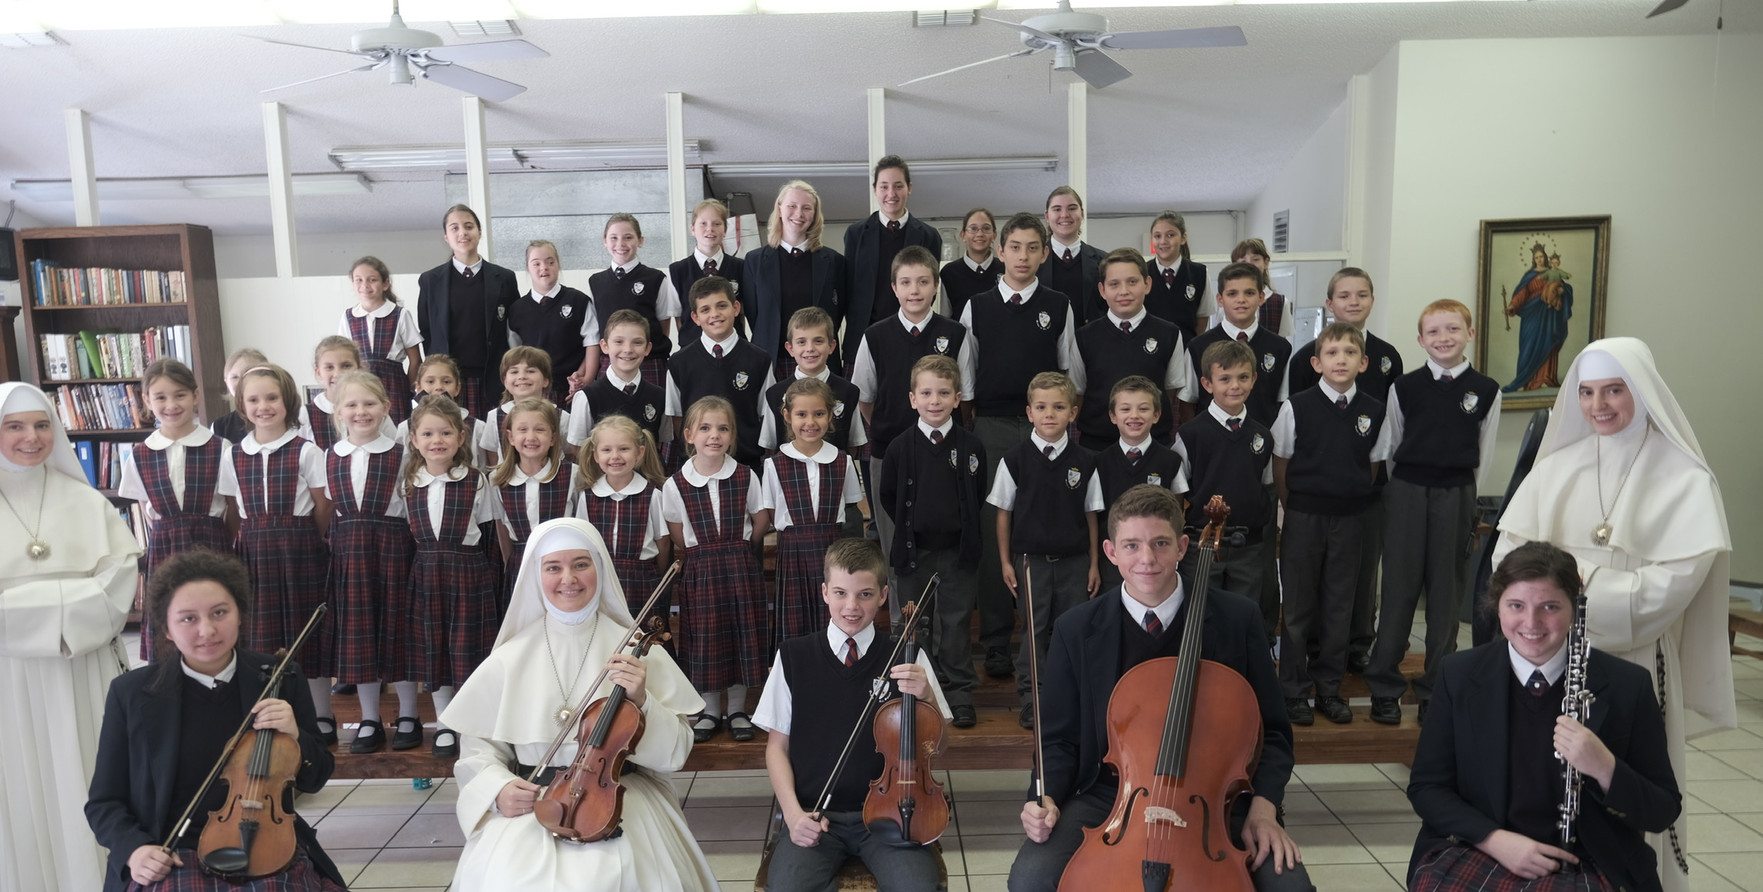 Thank you from the Sisters and students of Queen of All Saints!